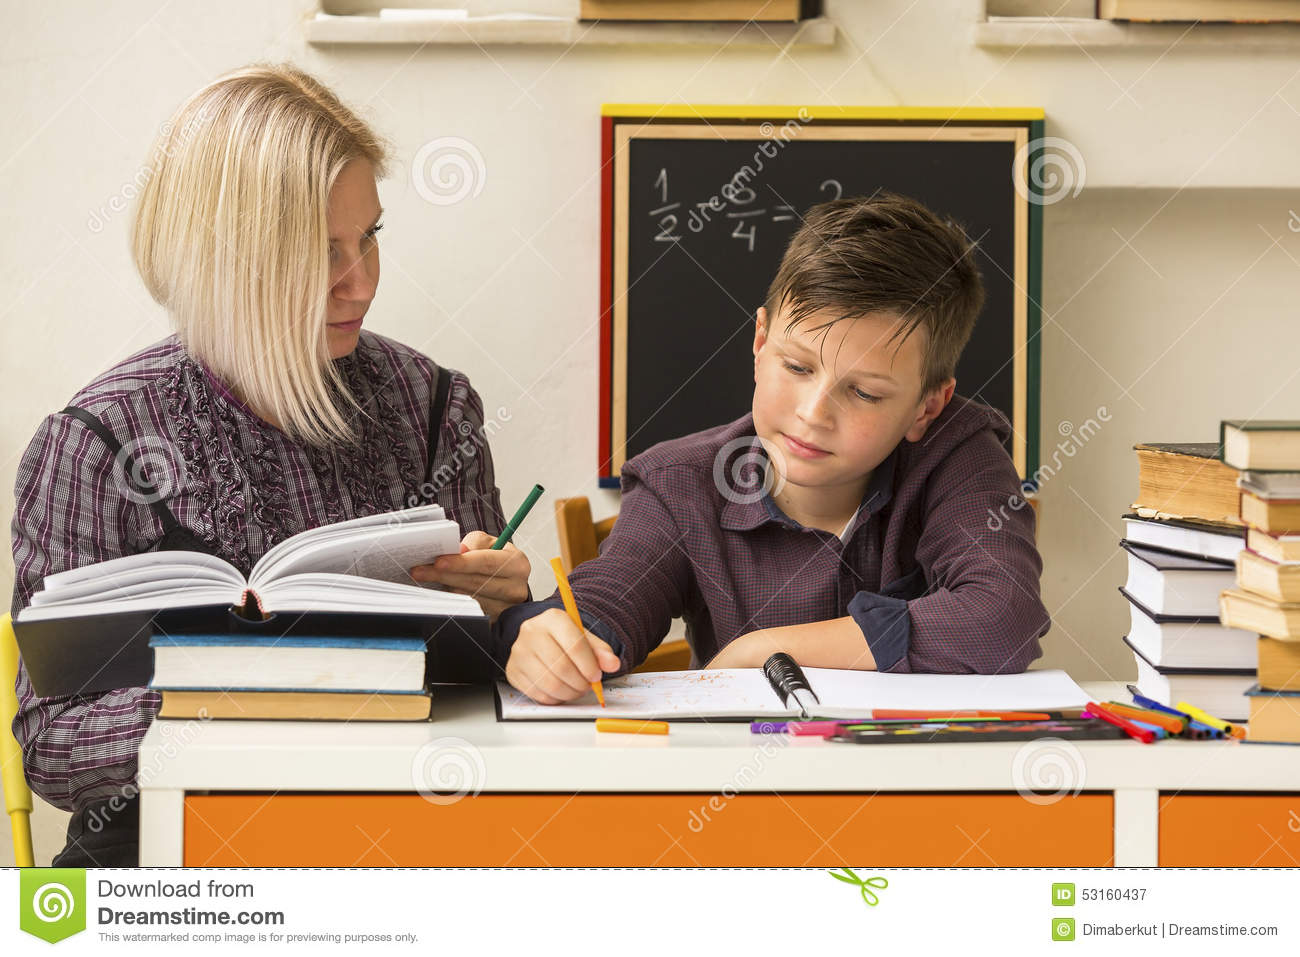 elementary school homework help (grades 3-12) live homework help, skills building and writing workshops tutoring services are available everyday from 3 pm to 10 pm.